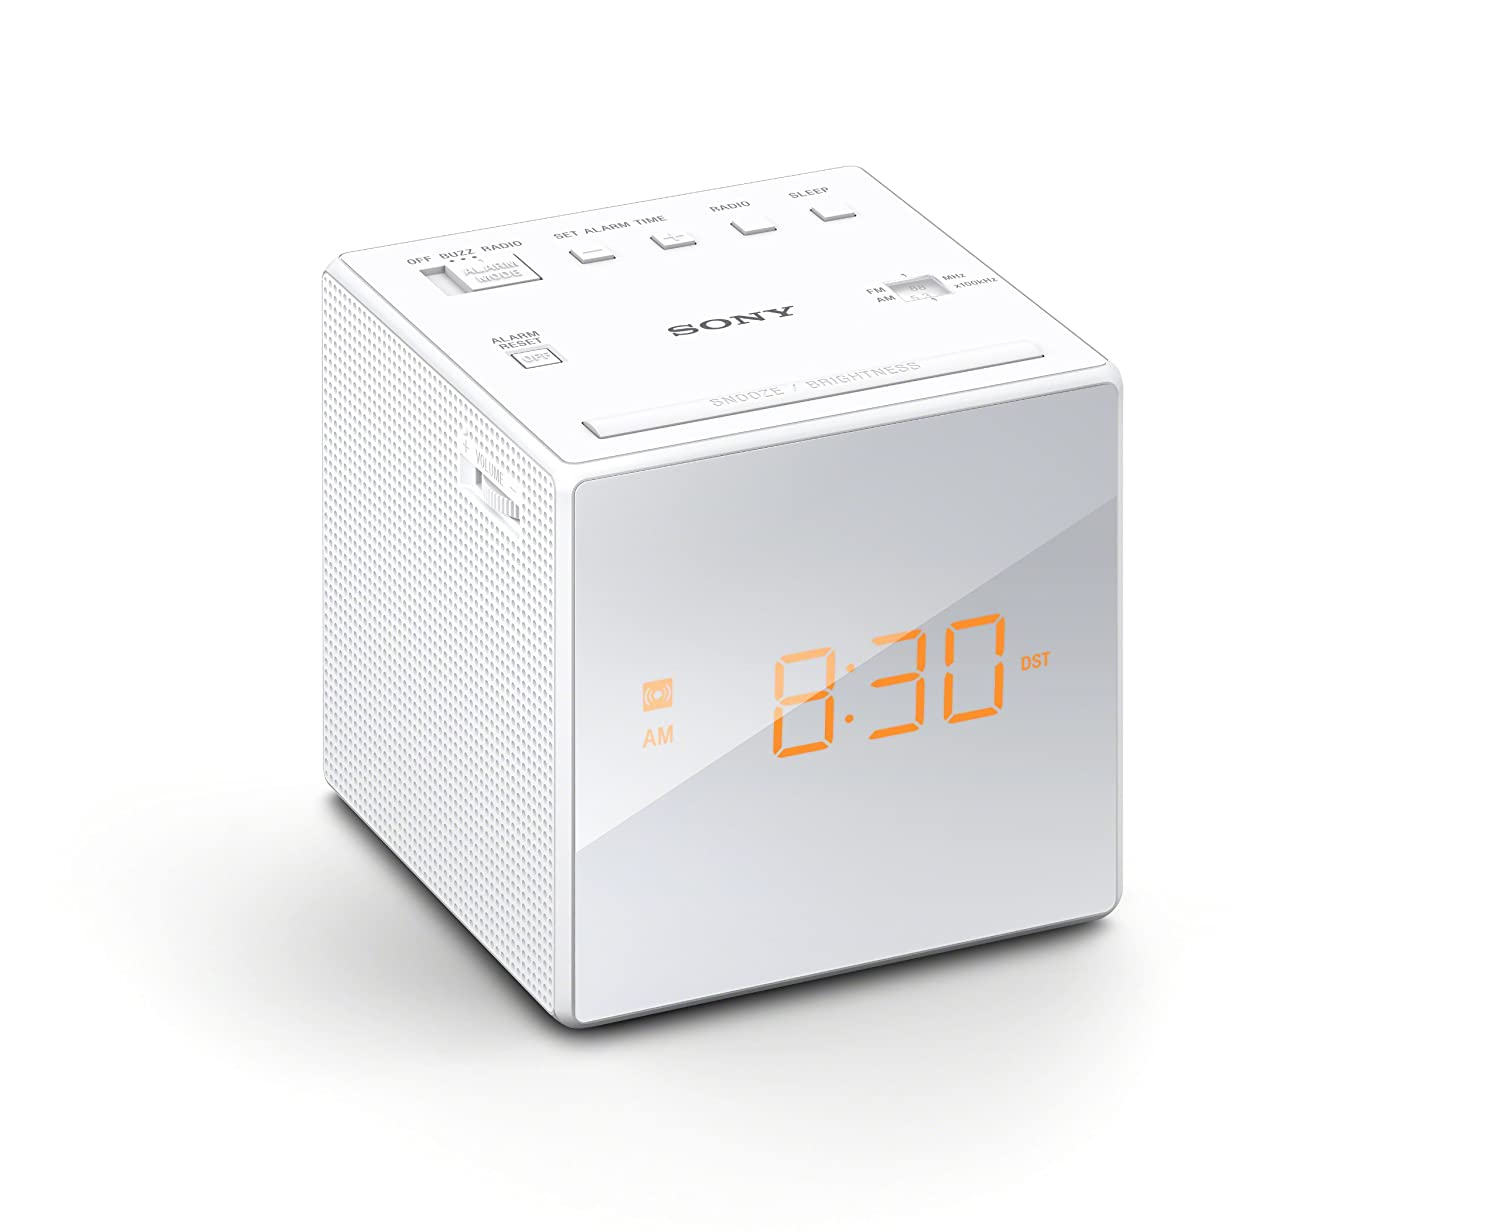 Sony ICFC-1 Alarm Clock Radio LED Black ICF-C1/BC3